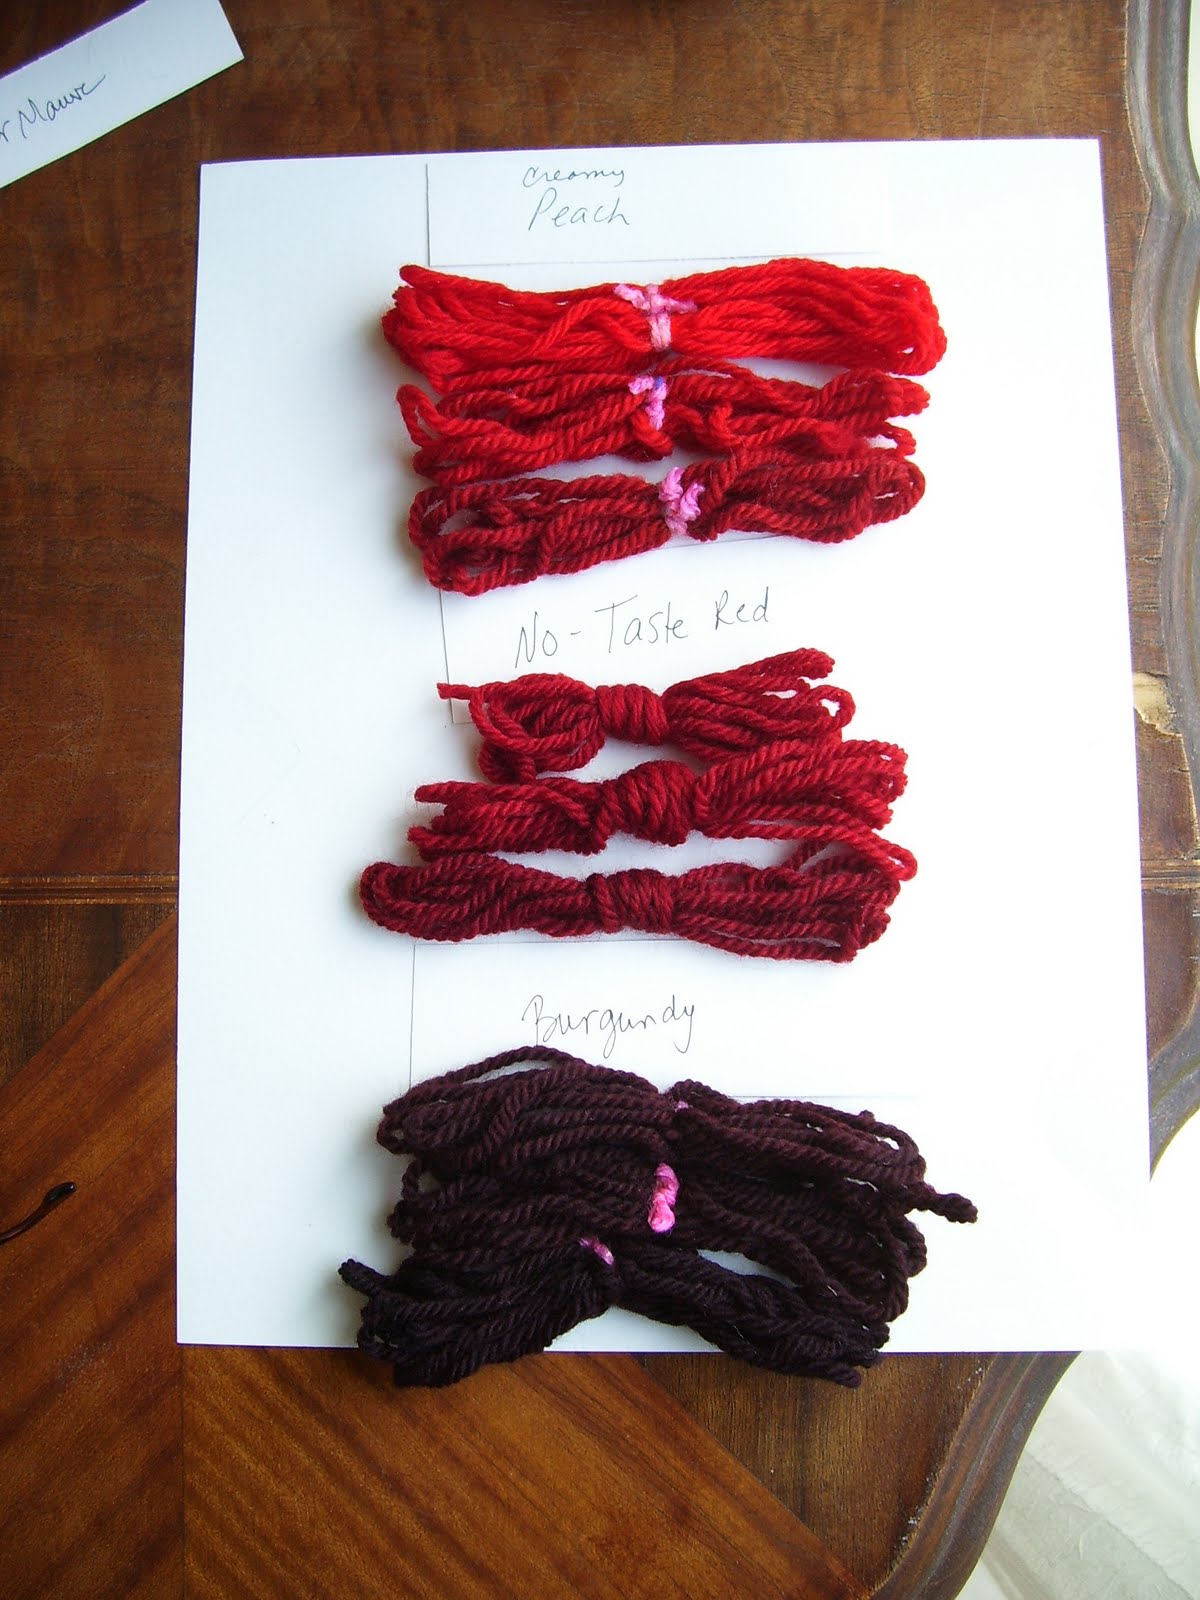 Prairie Gumbo: The Wilton Dyeing Project (Part 1)